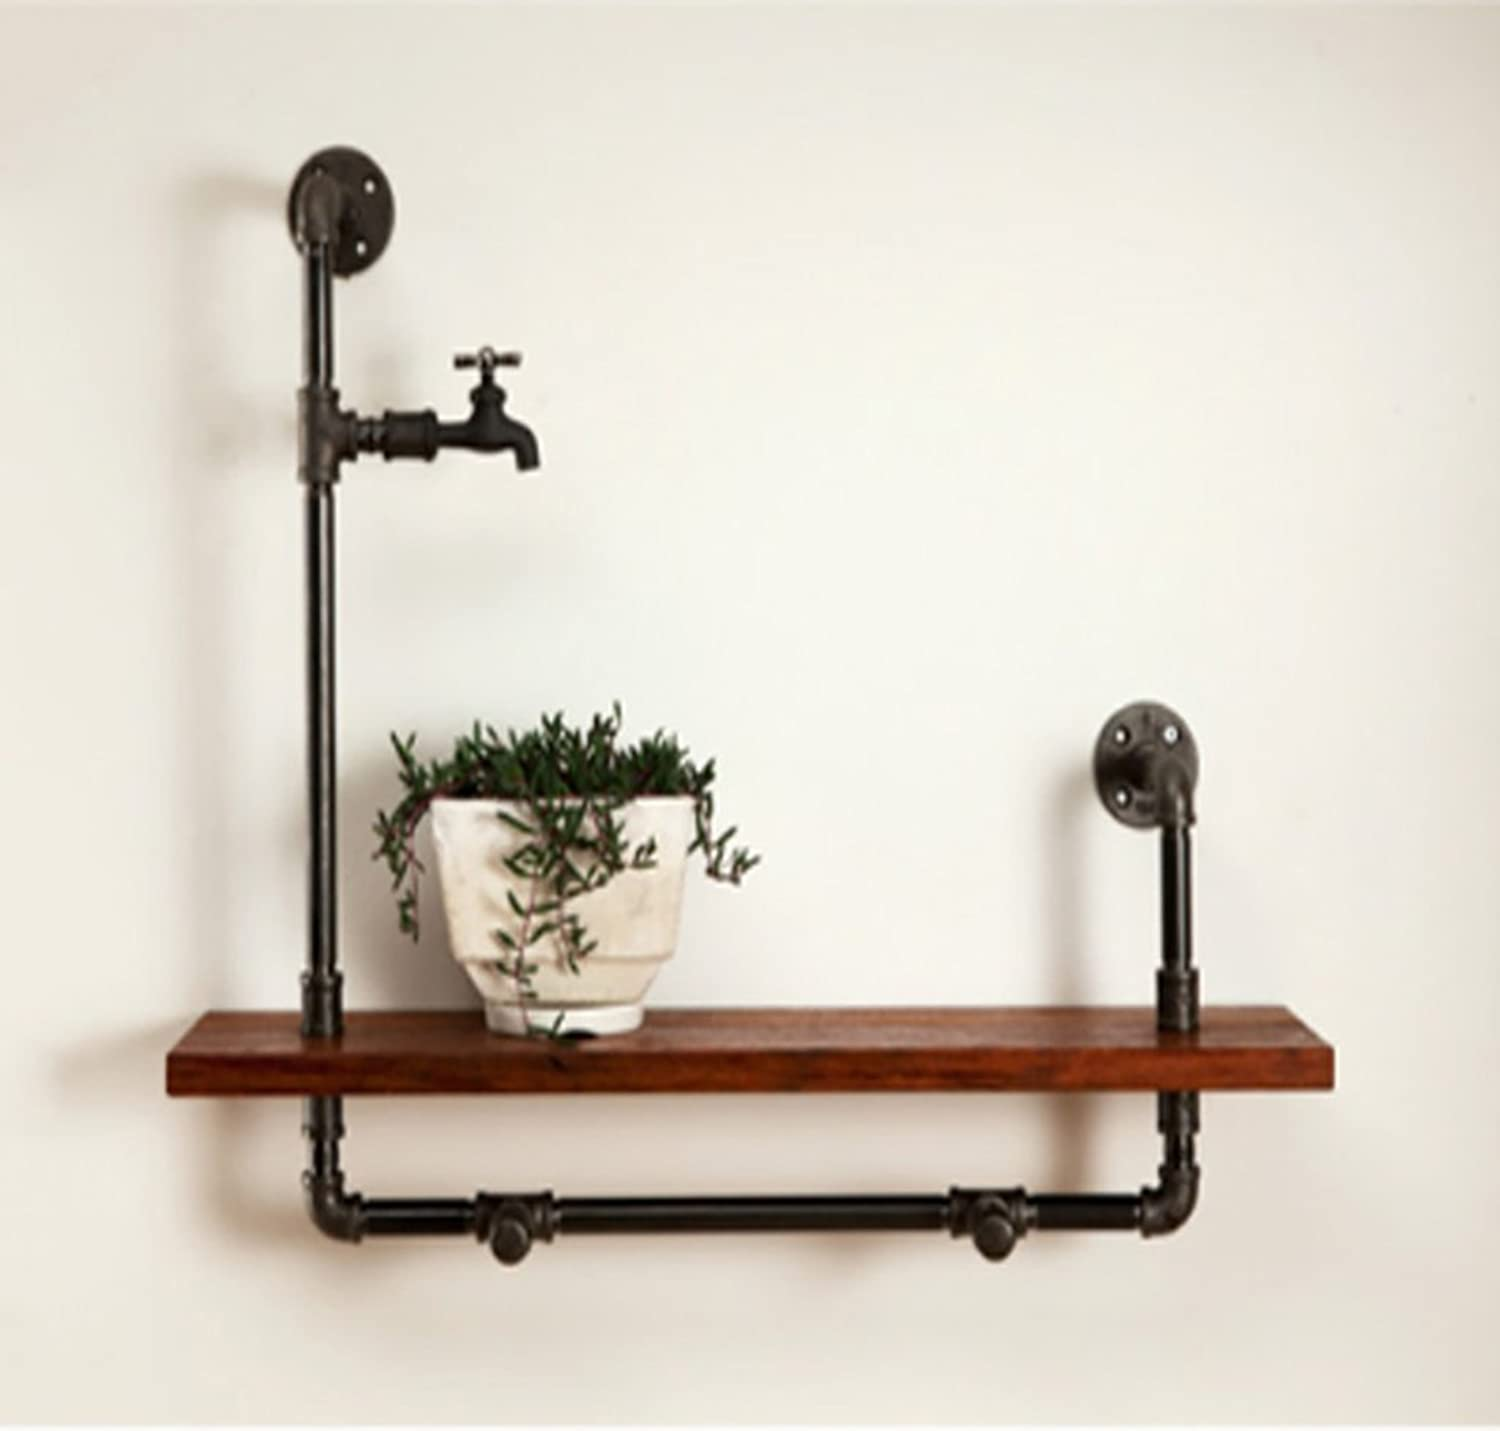 Decorative Accessories Wall Mounted Shelves LOFT Retro Iron Water Pipe Bookshelves Potted Display Stand Living Room Background Wall Decoration Solid Wood Shelves Floating Shelves (Size   402060cm)